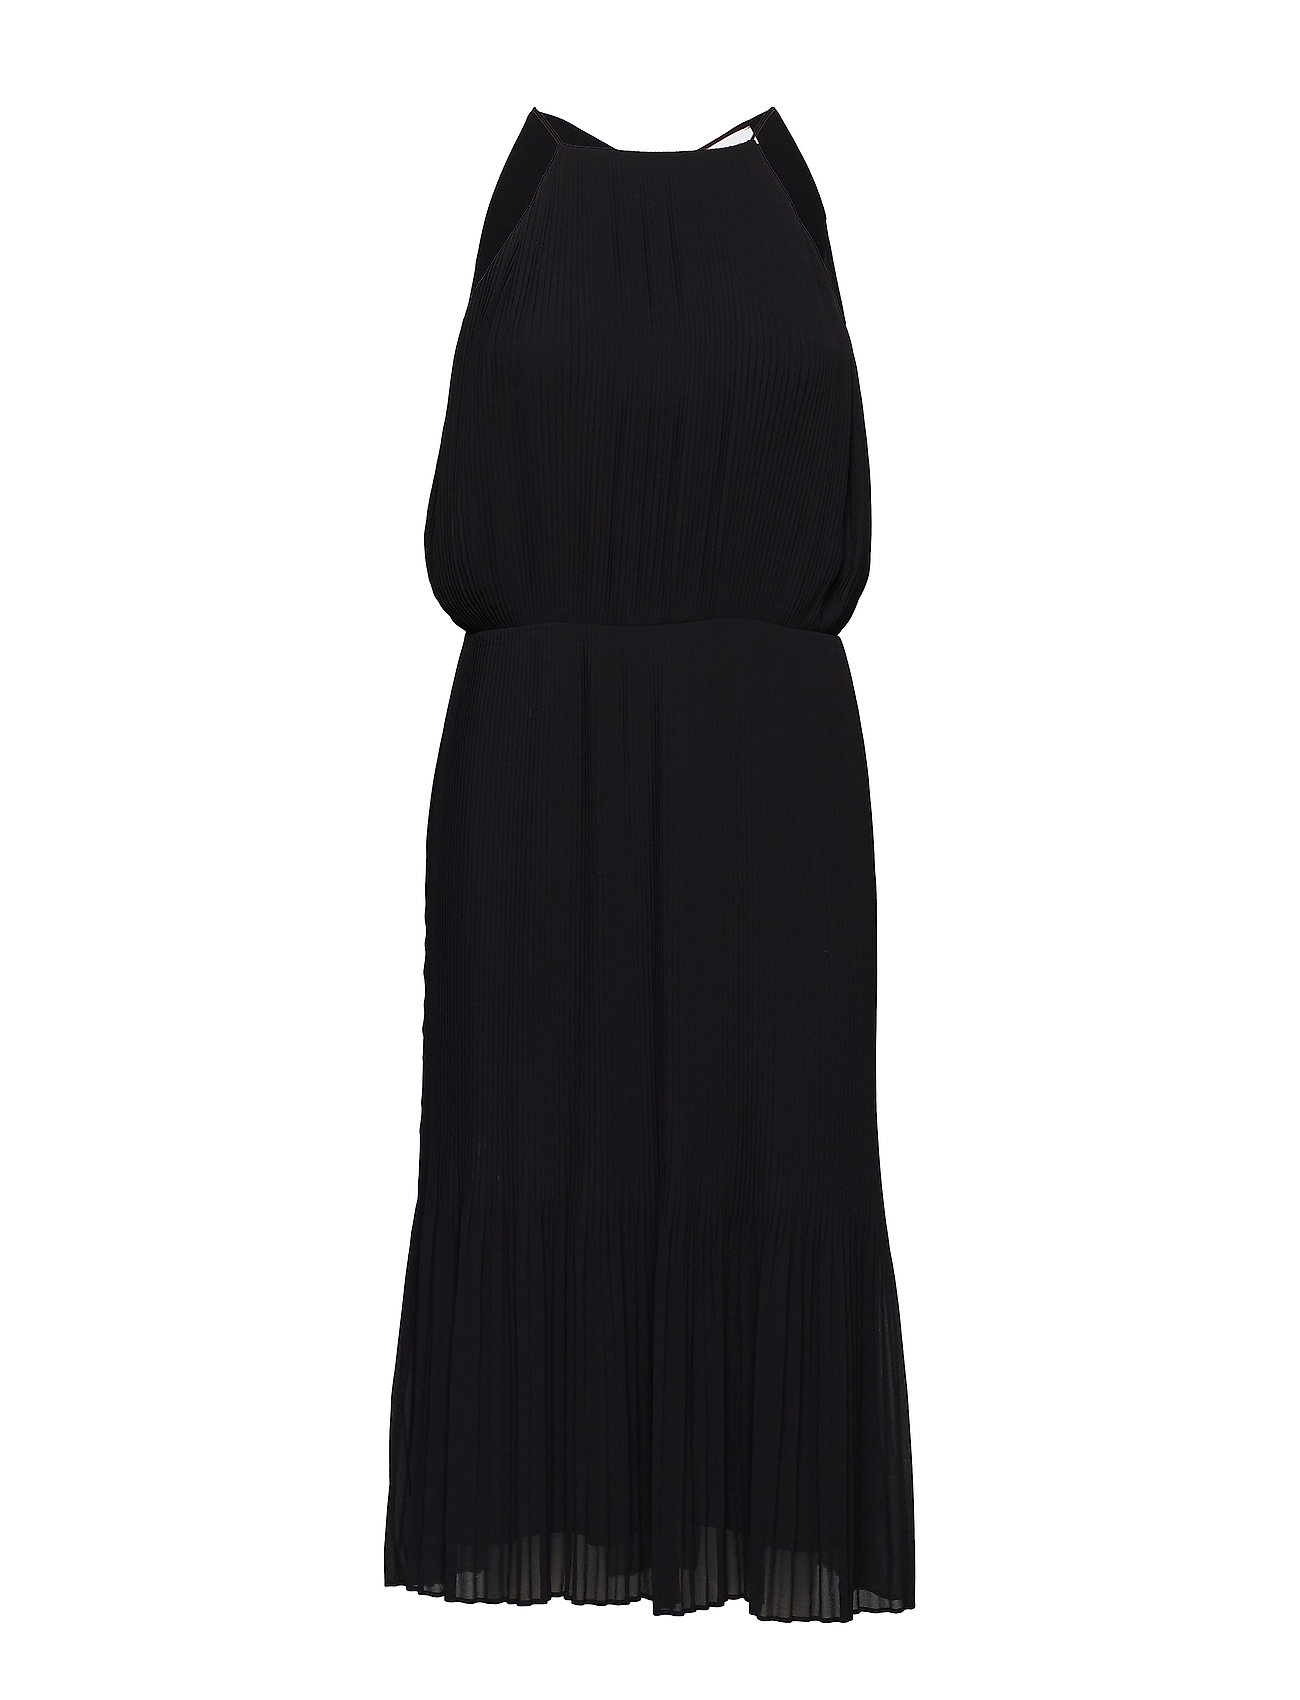 Samsøe & Samsøe Millow dress 6621 - BLACK